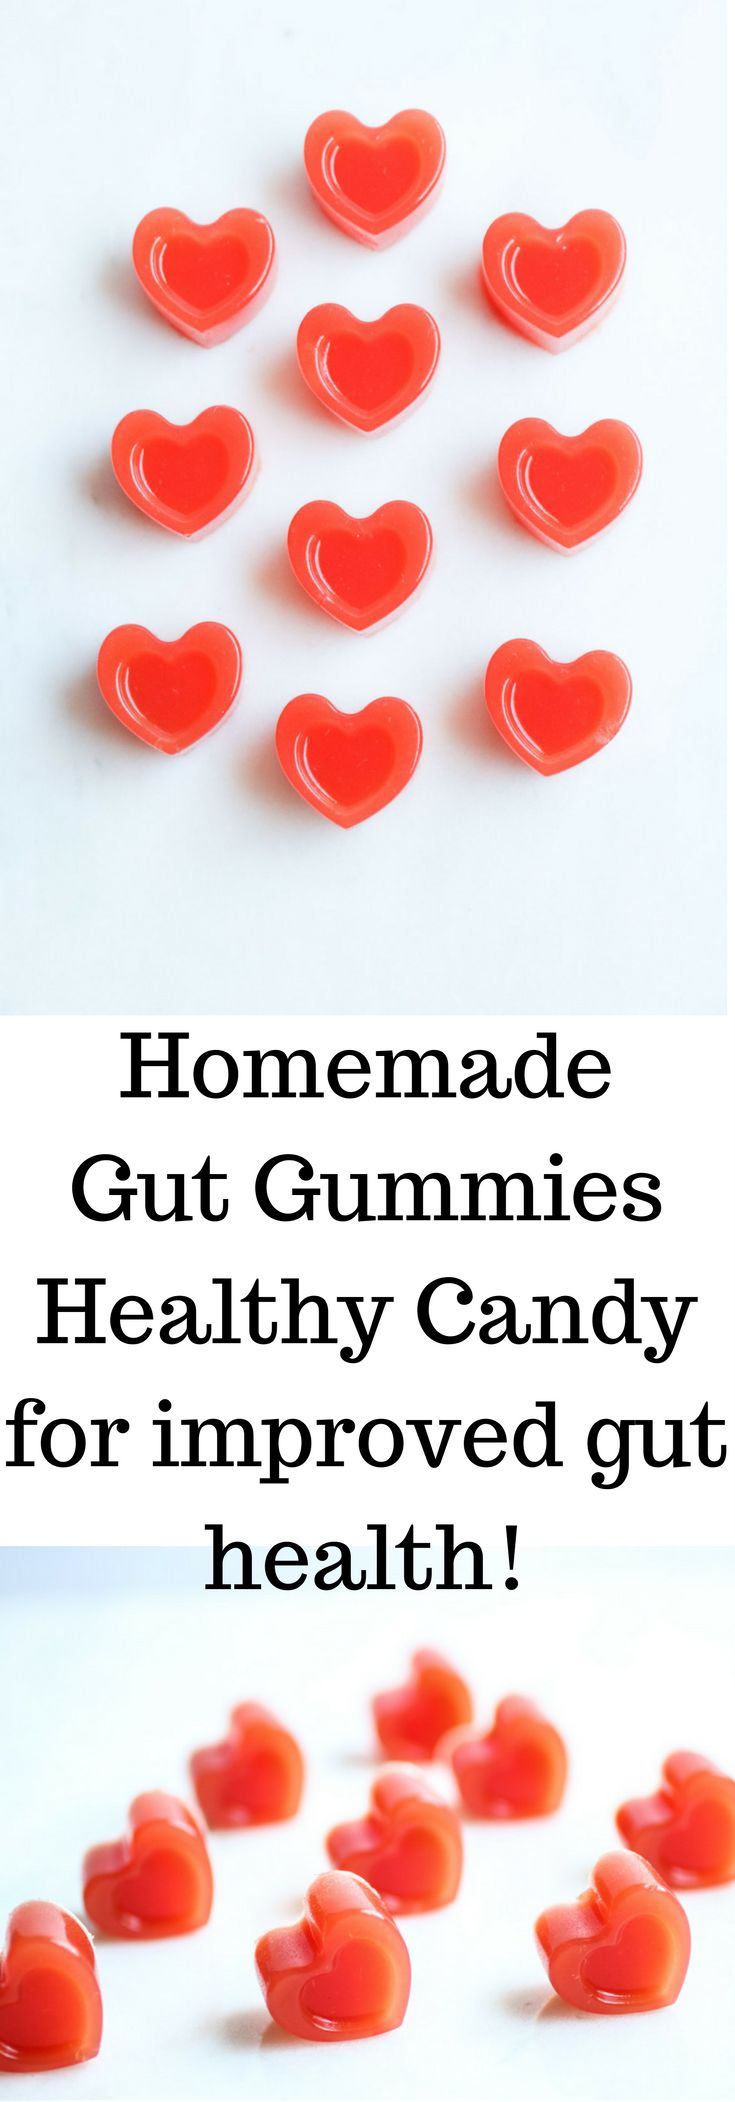 Homemade Watermelon Lemonade Gut Gummies, healthy candy for improved gut health that your kids will love!